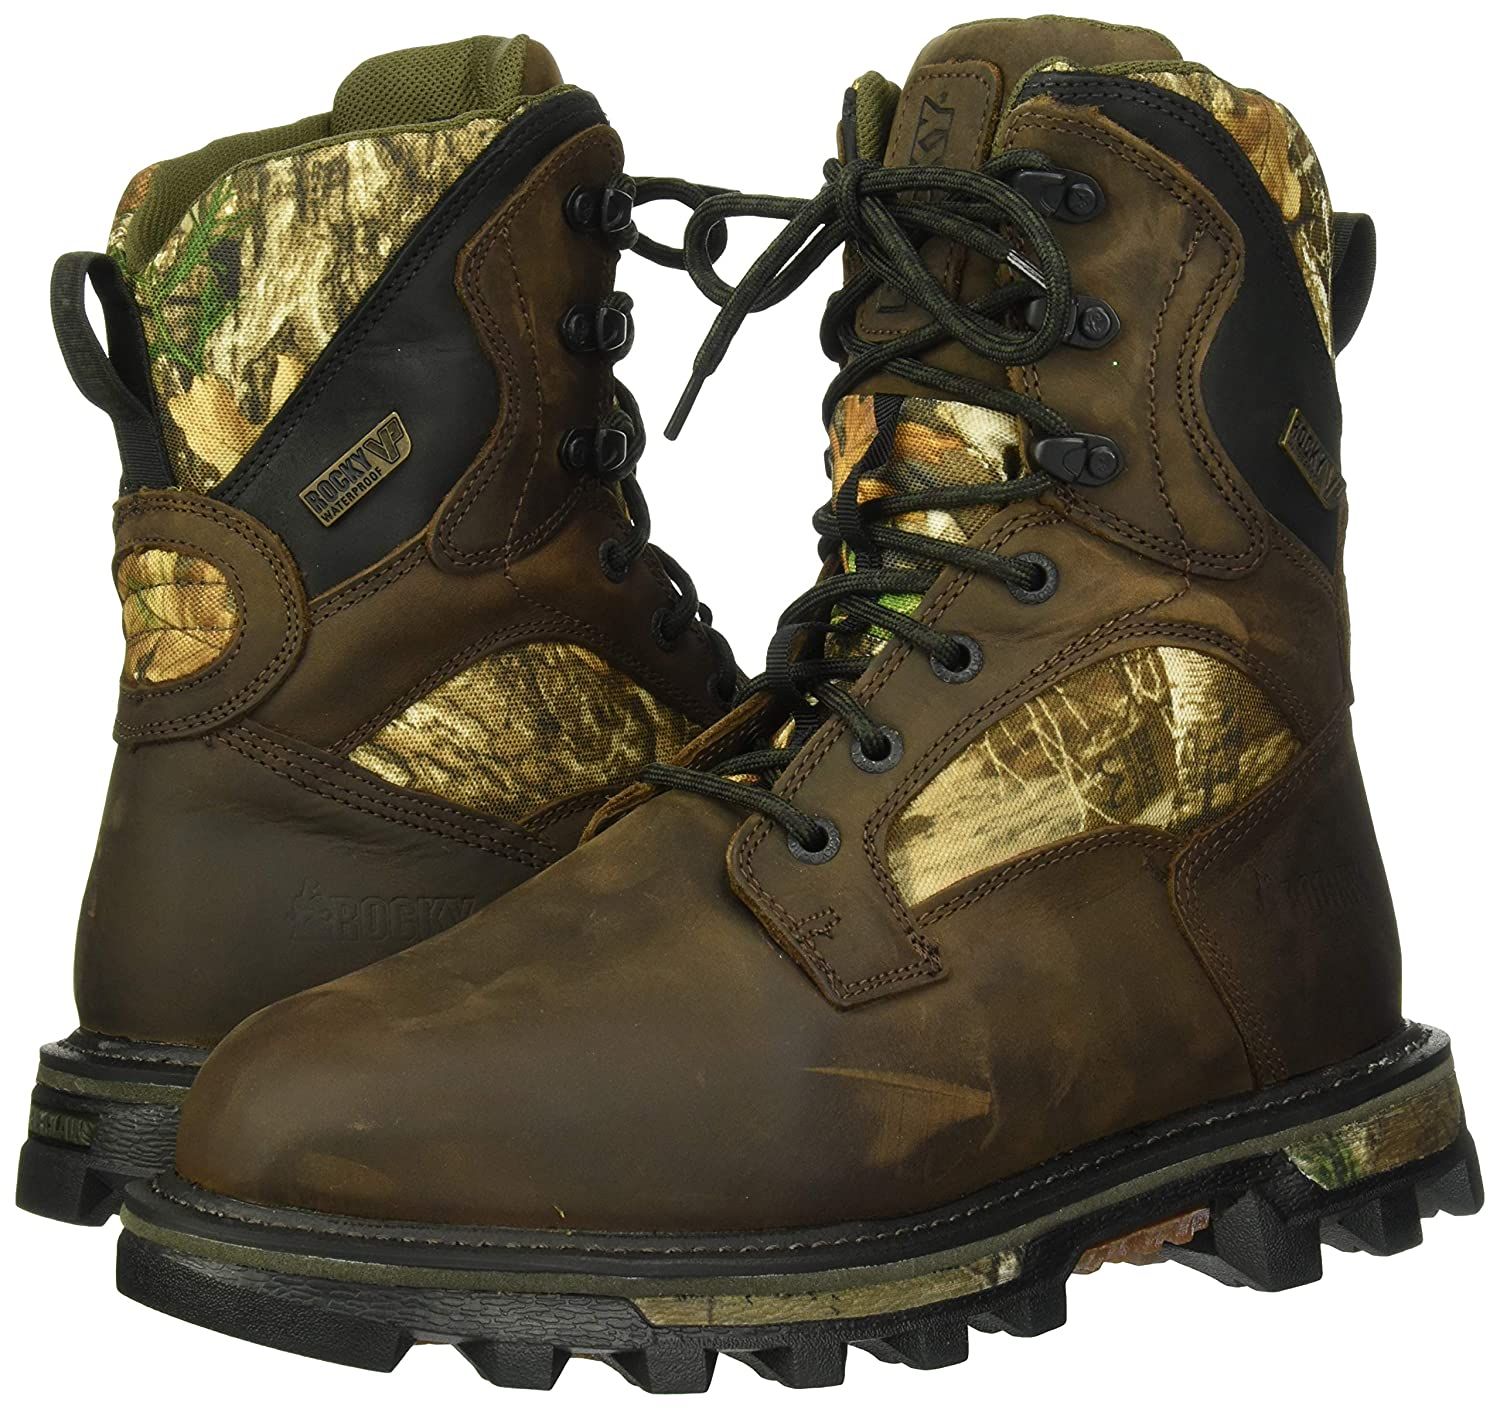 f1df13db678 Rocky Men's 8'' Bearclaw FX 800g Insulated Waterproof Outdoor Boots